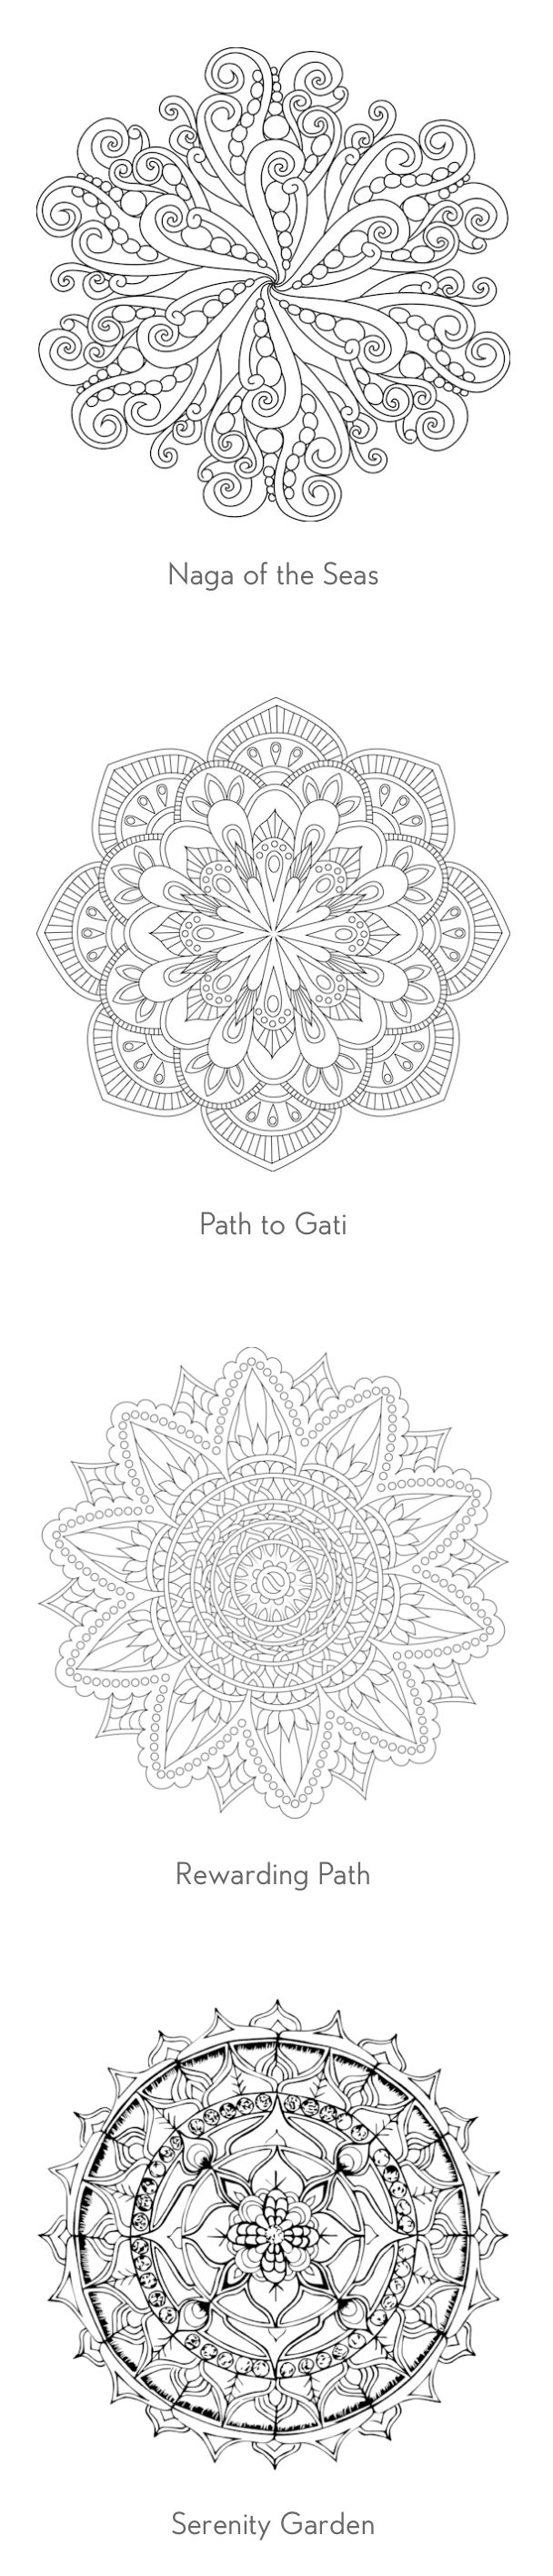 best 20 free coloring pages ideas on pinterest colouring sheets